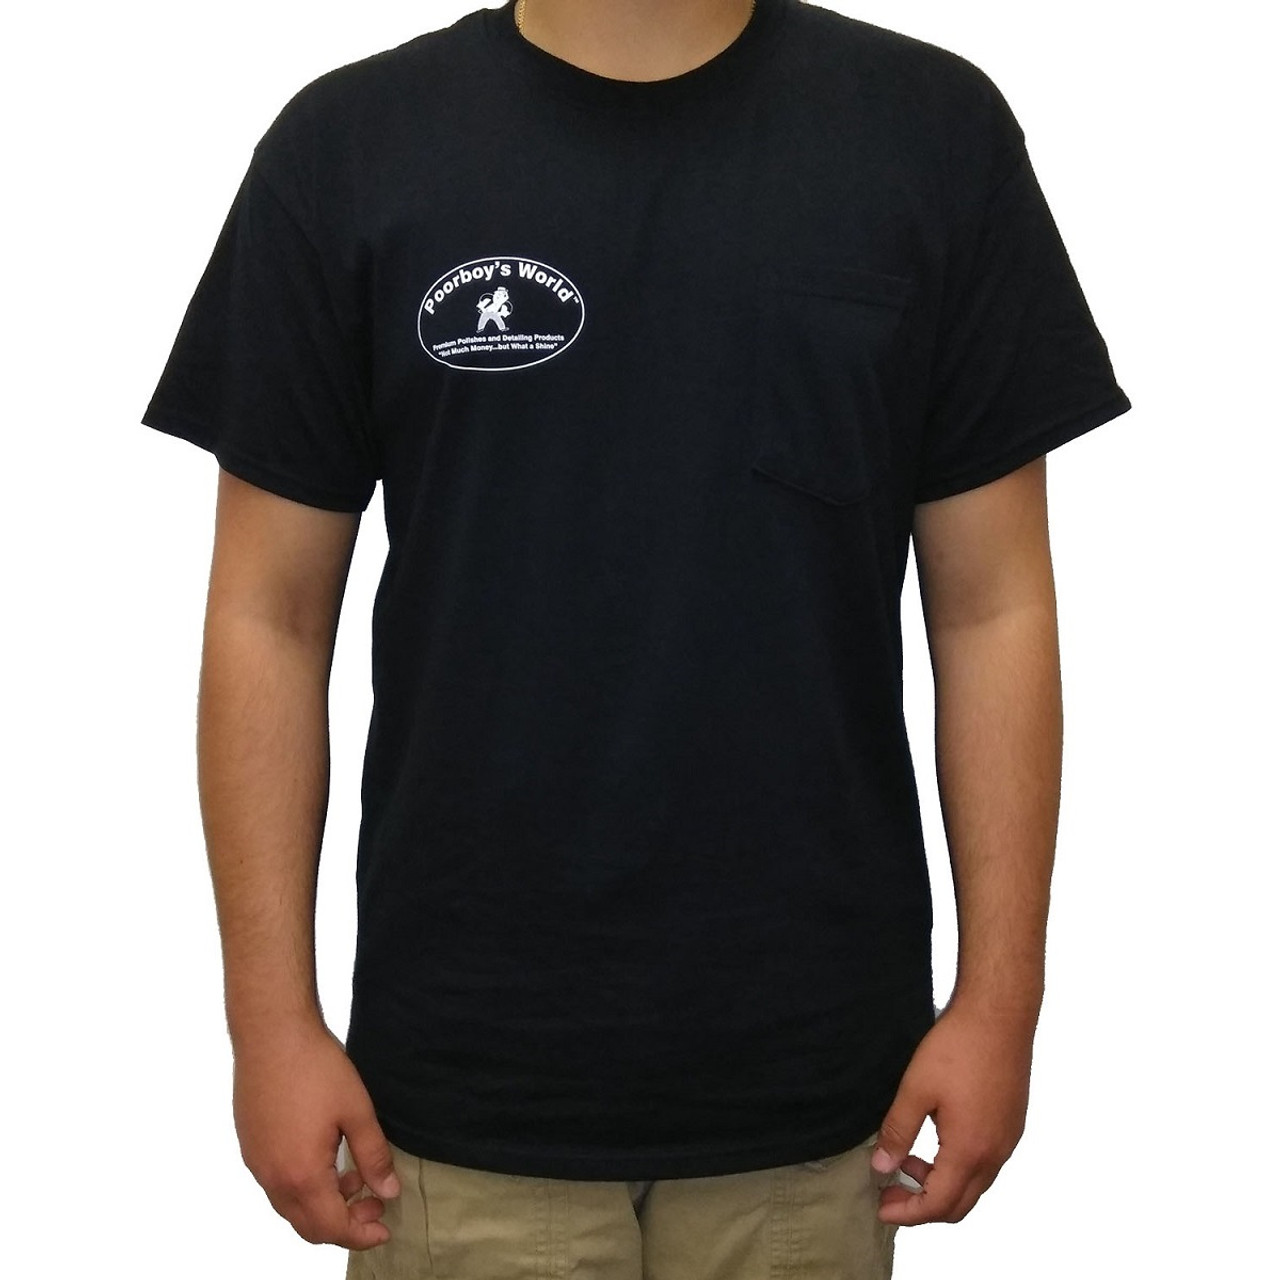 Poorboy's World Black T-Shirt w/ Pocket - XL - Front